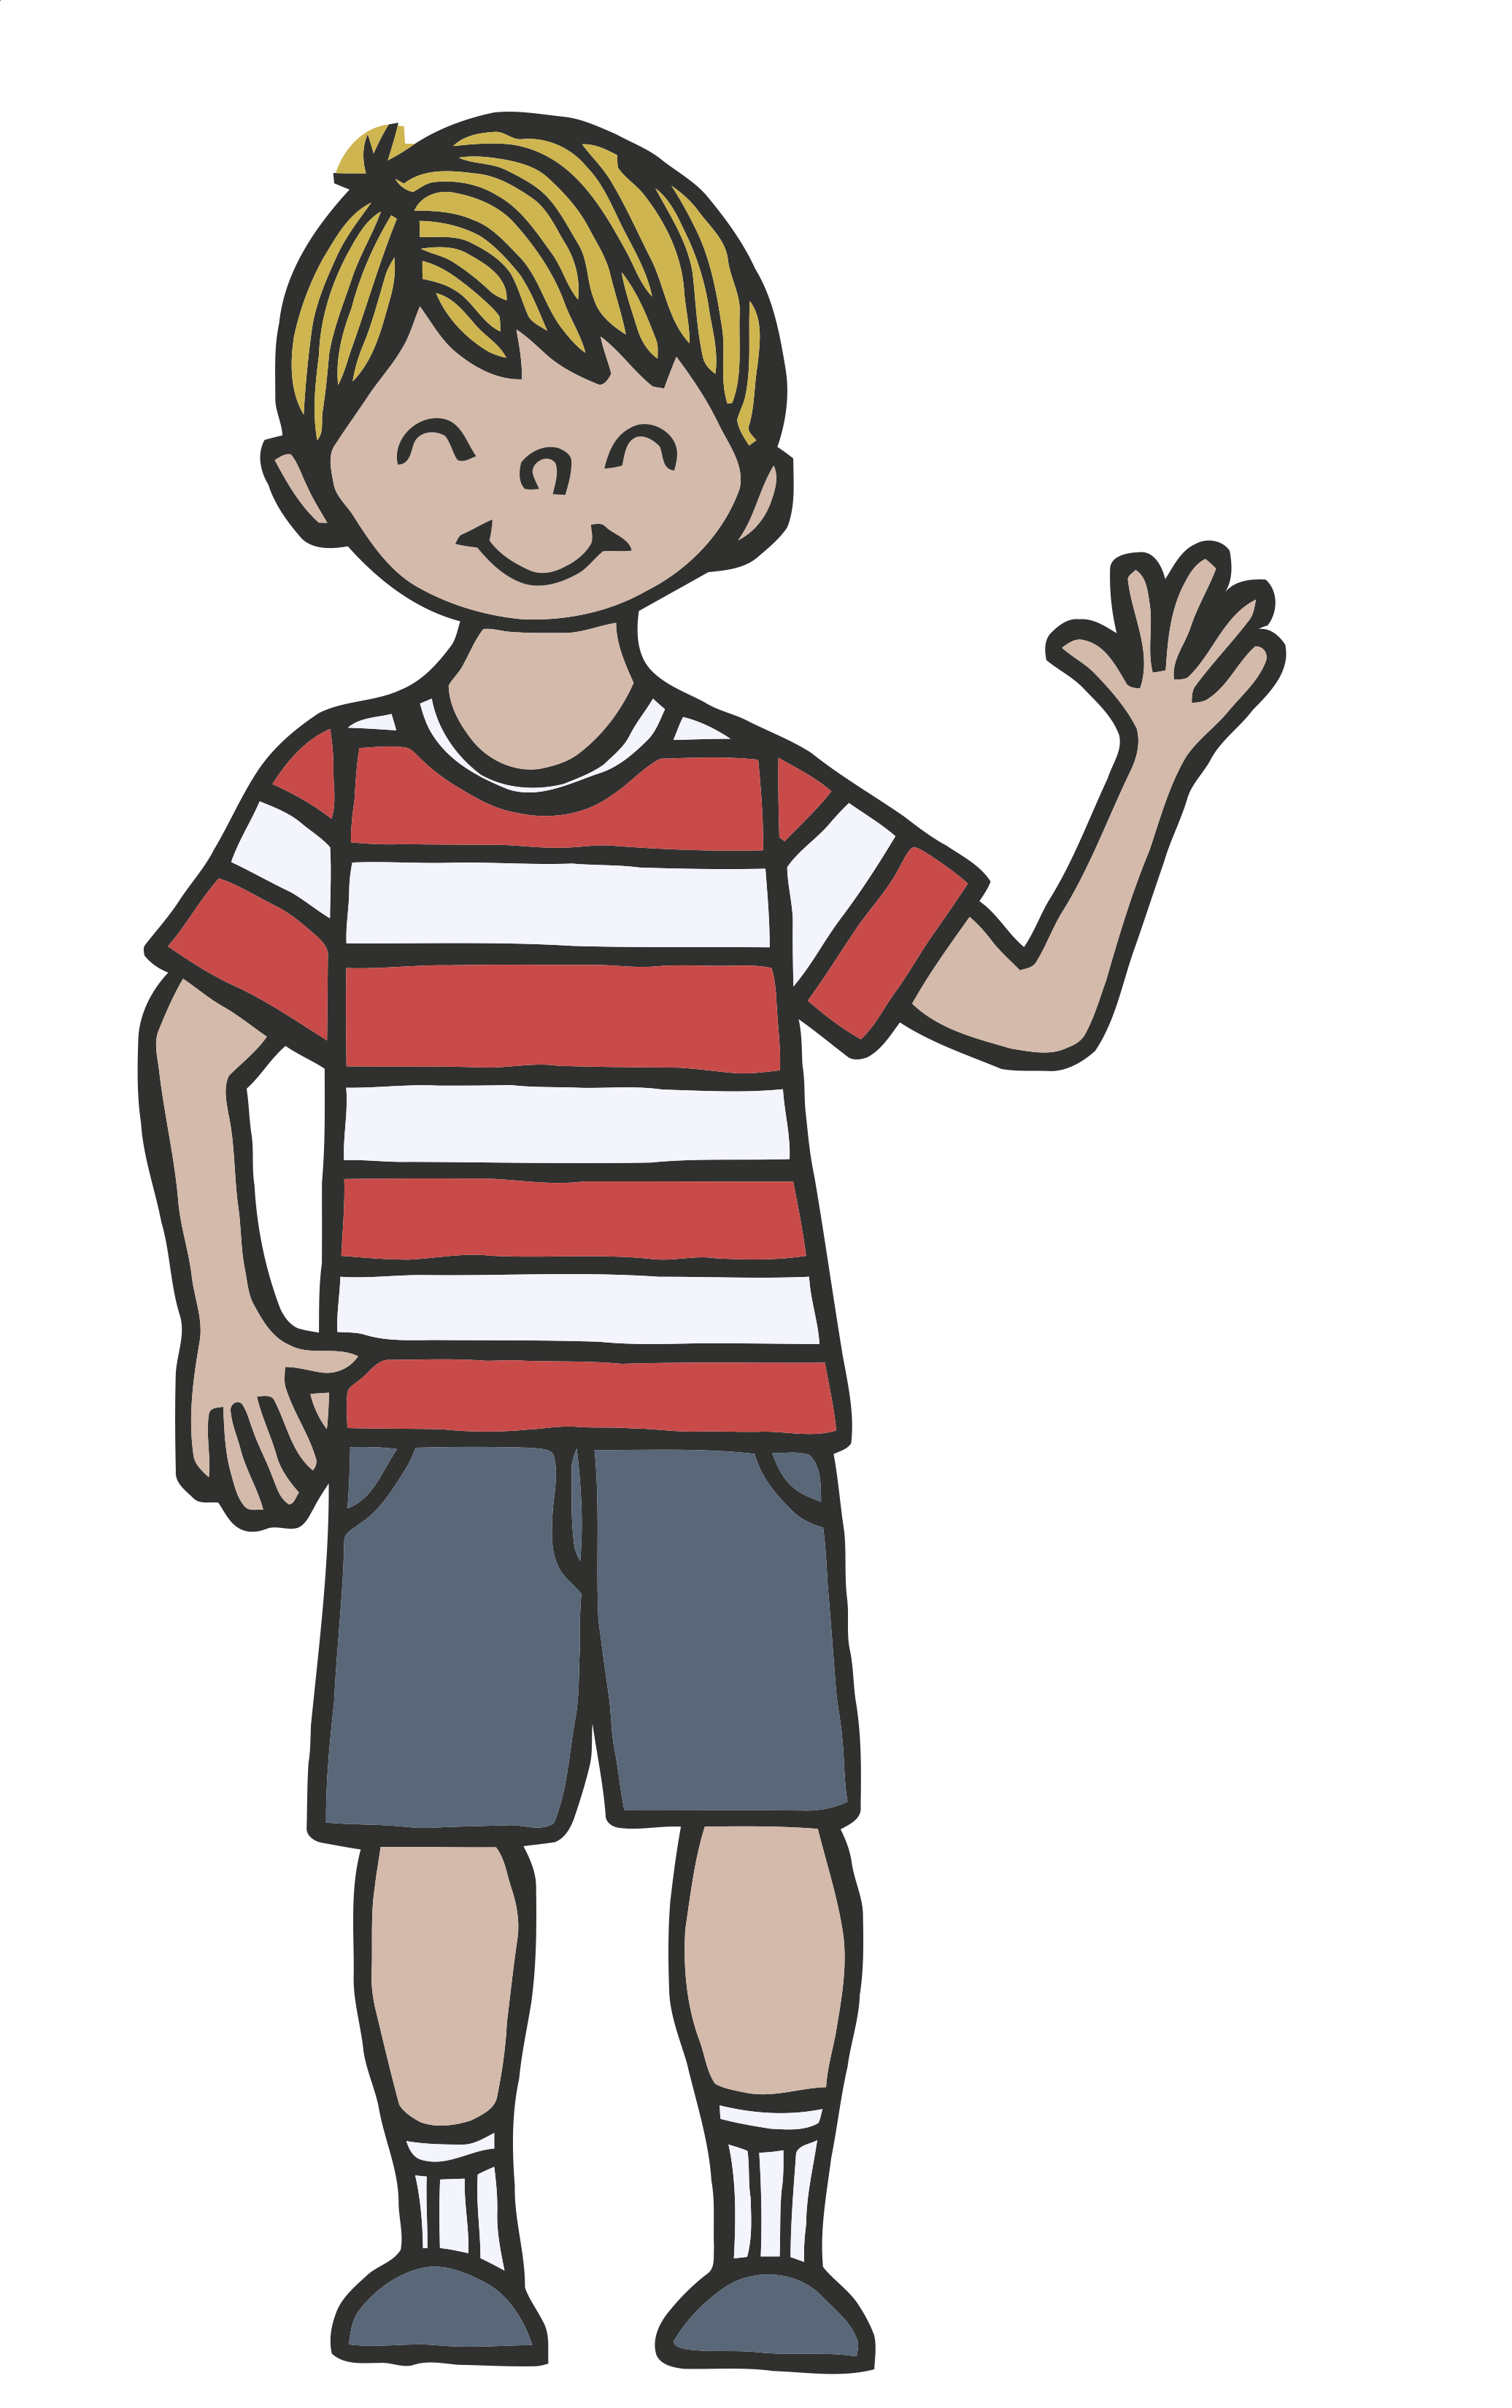 Clipart Images- Child Waving - ClipArt Best